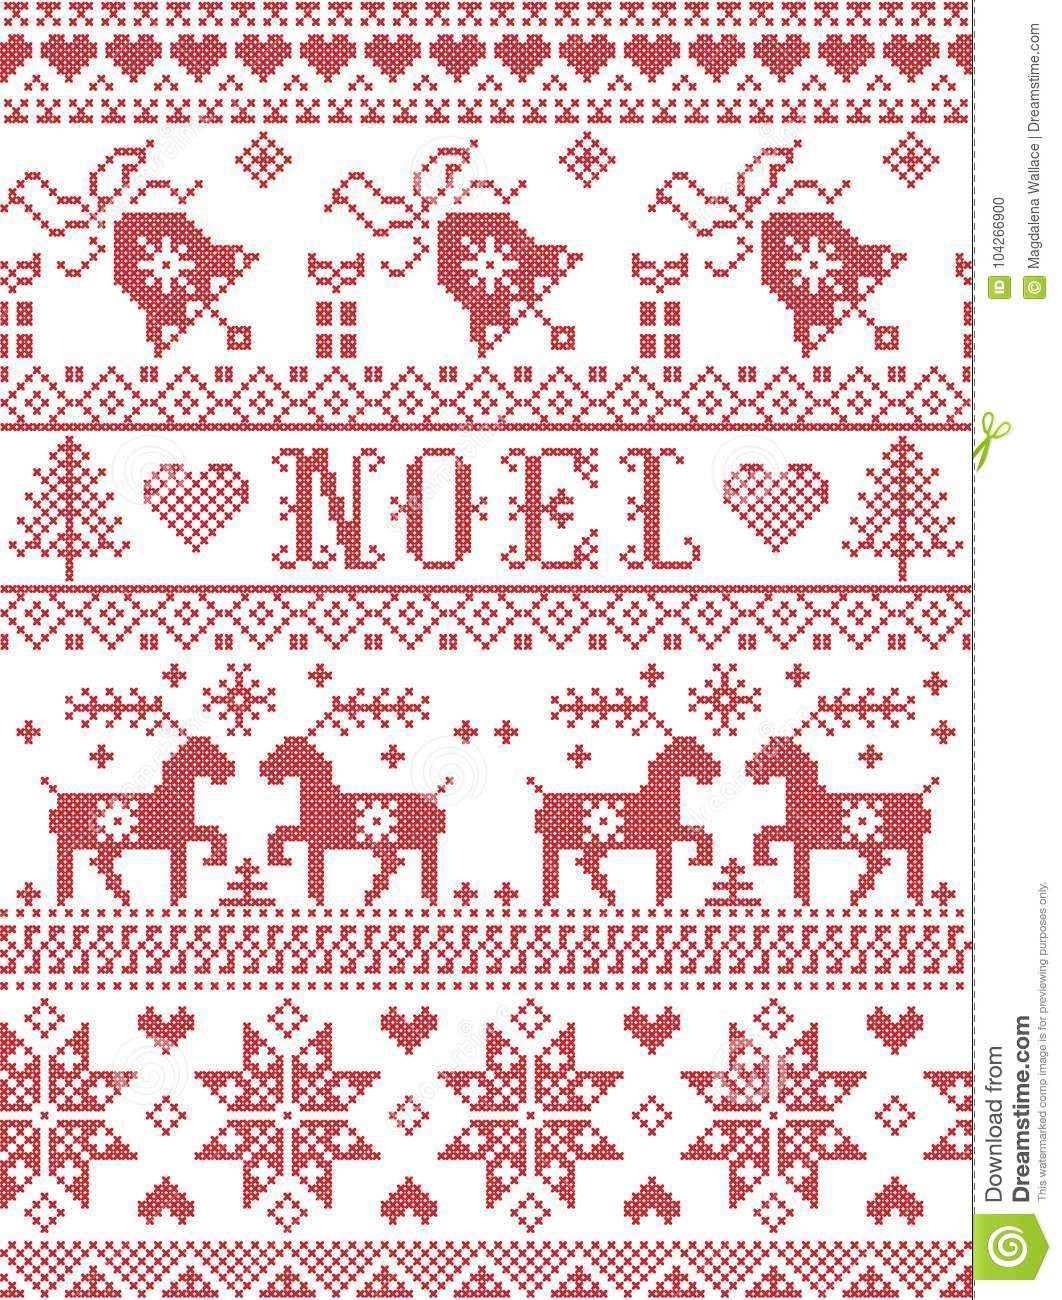 Norwegian Christmas.Seamless Noel Scandinavian Fabric Style Inspired By